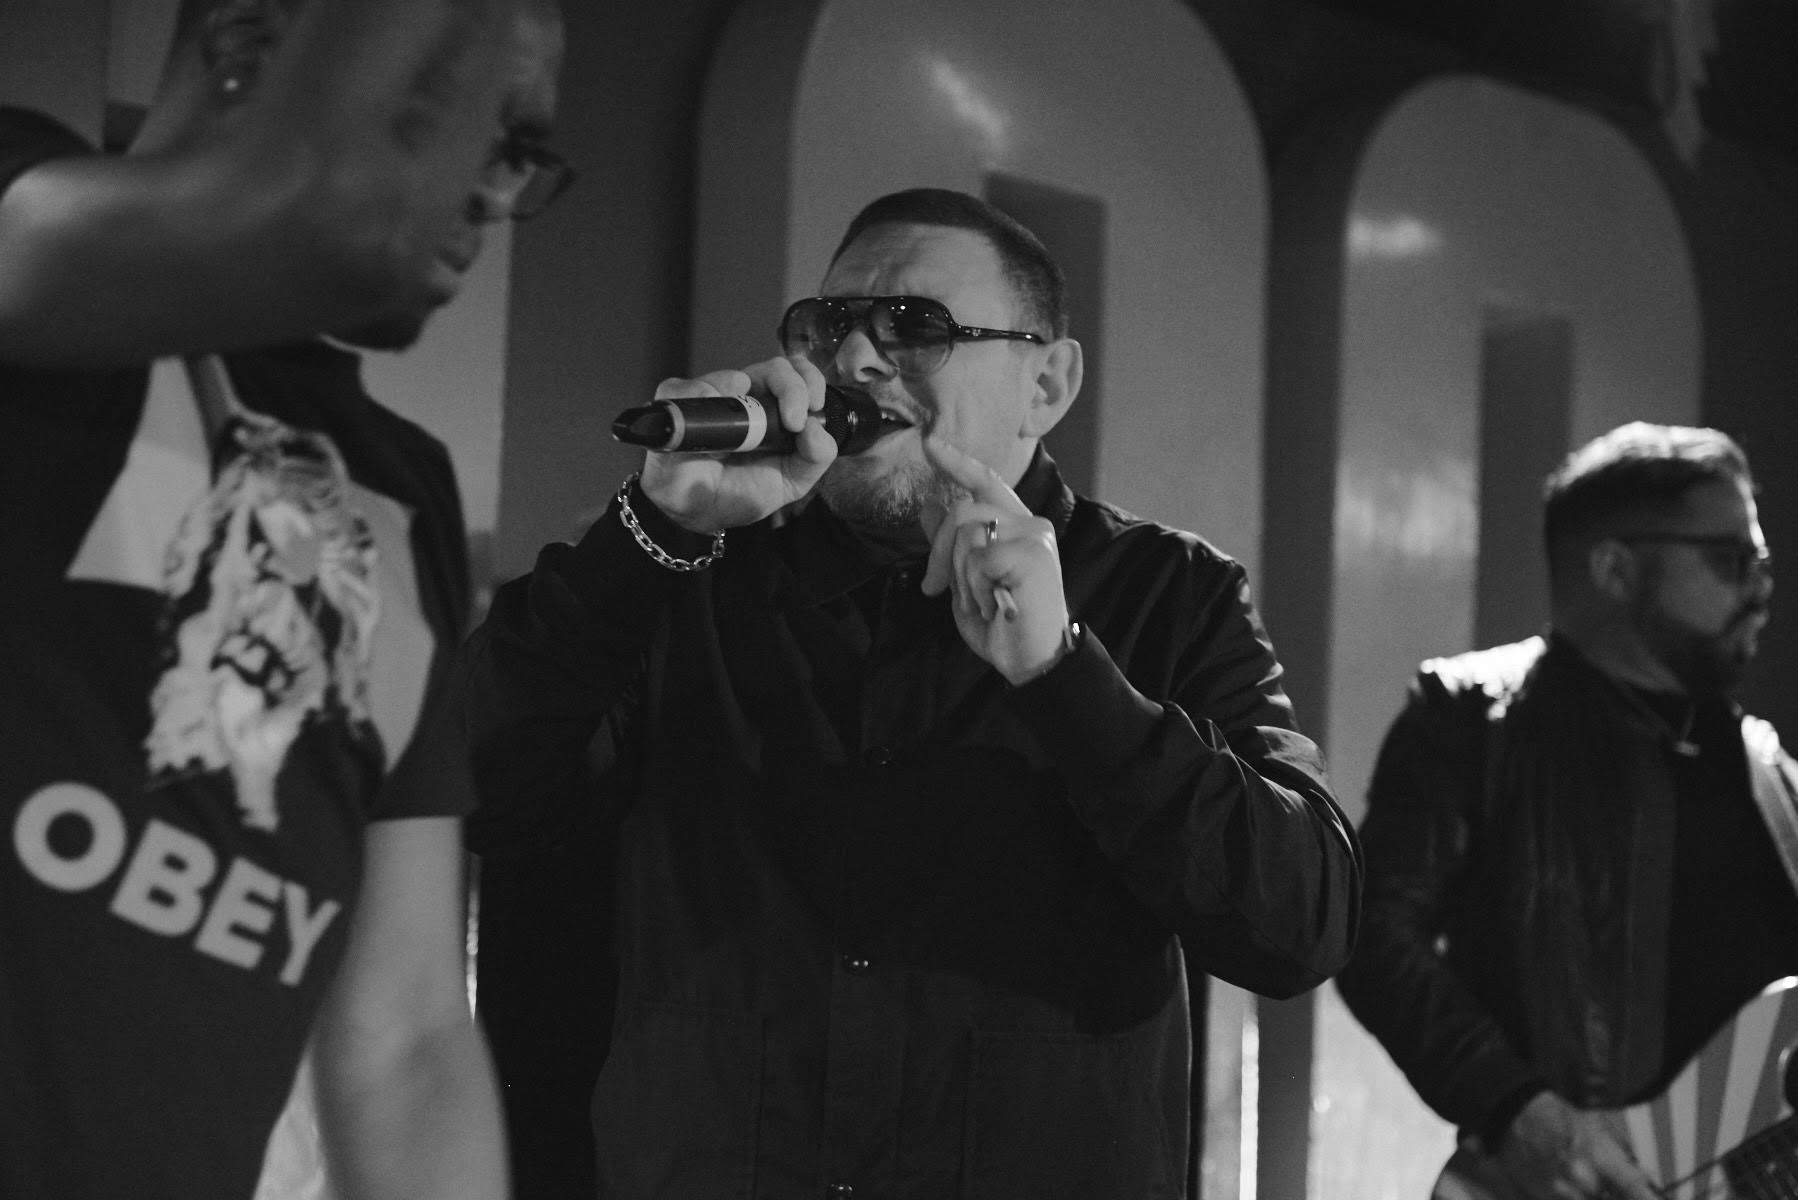 Black Grape at The 100 Club, London, for Fred Perry Subculture Live